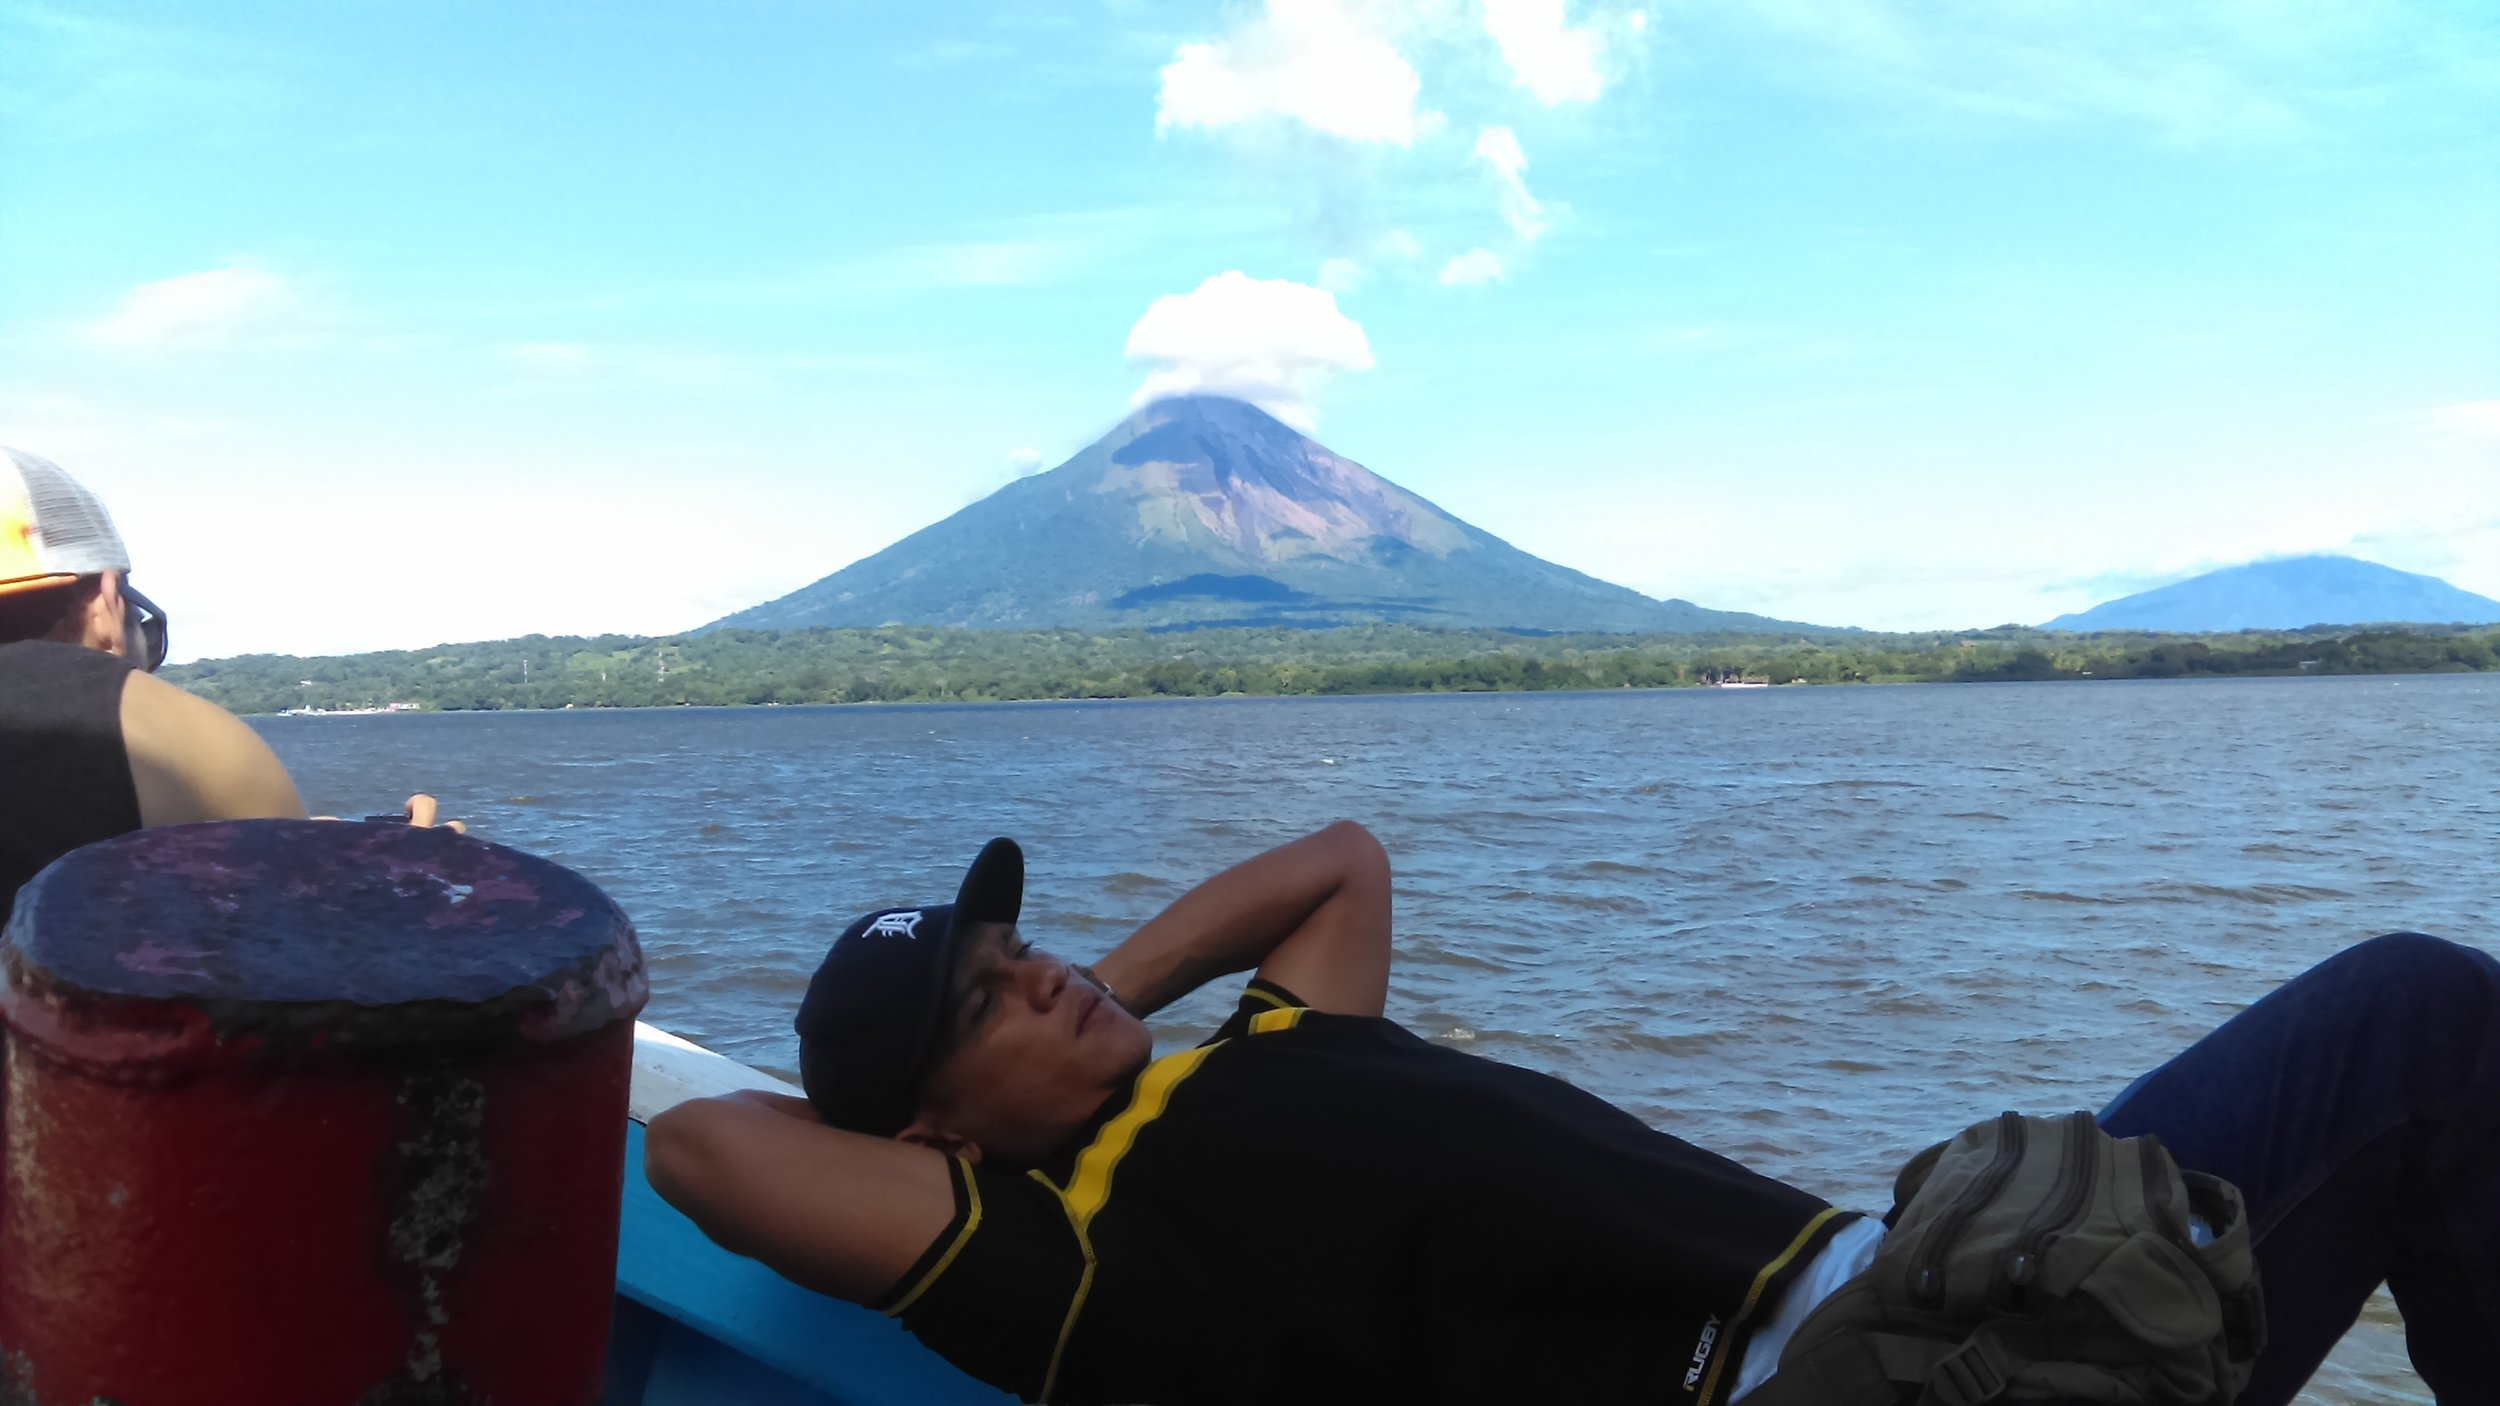 A local ferry-man on the lake voyage to the volcanic island of Ometepe. One of Nicaragua's treasures!